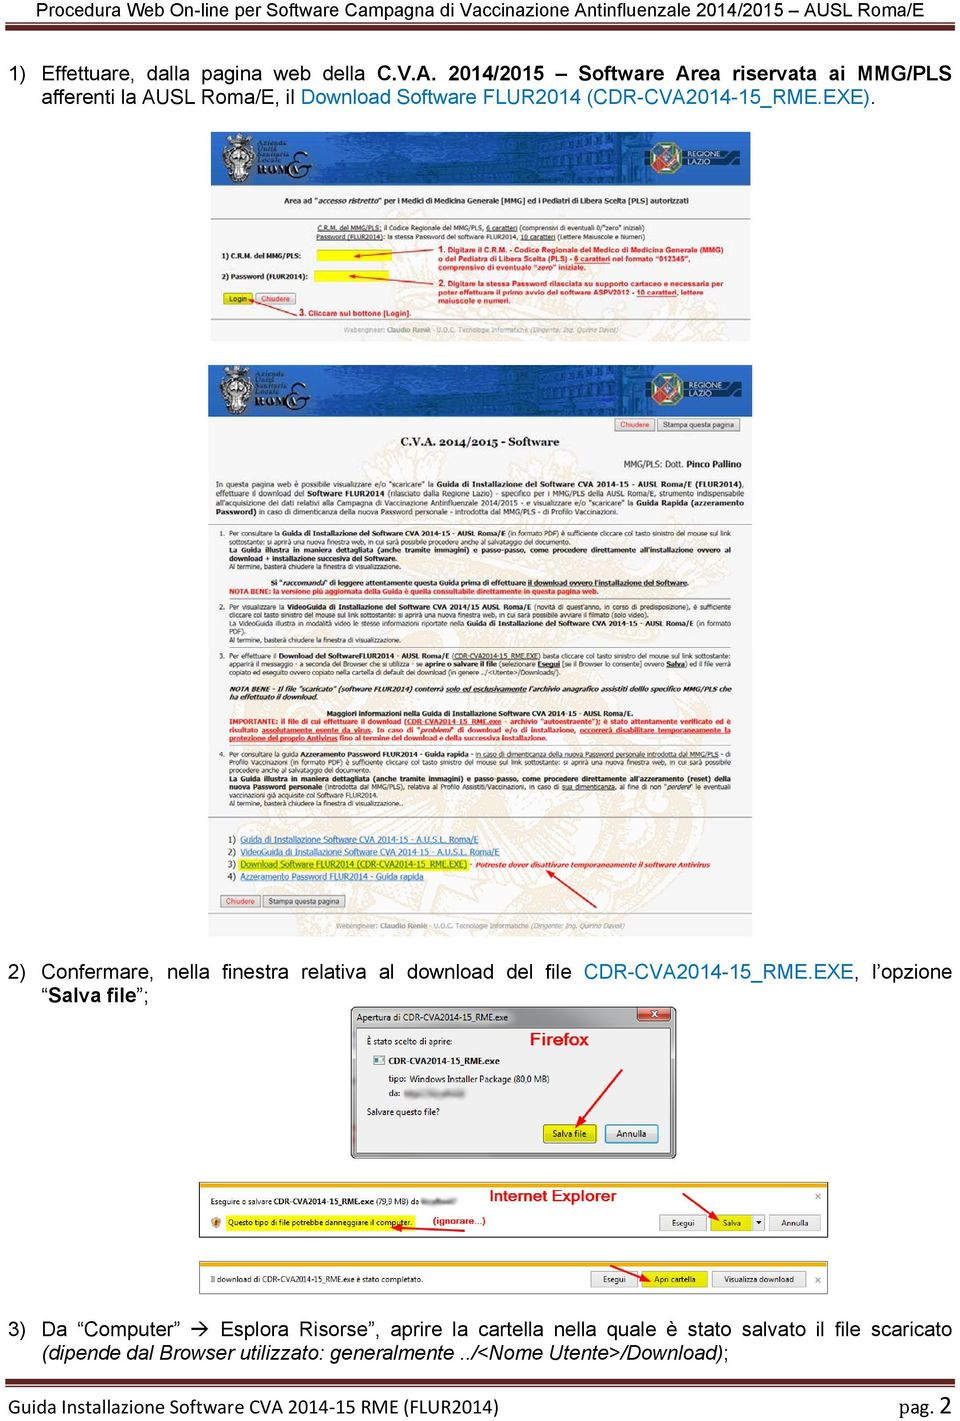 2) Confermare, nella finestra relativa al download del file CDR-CVA2014-15_RME.